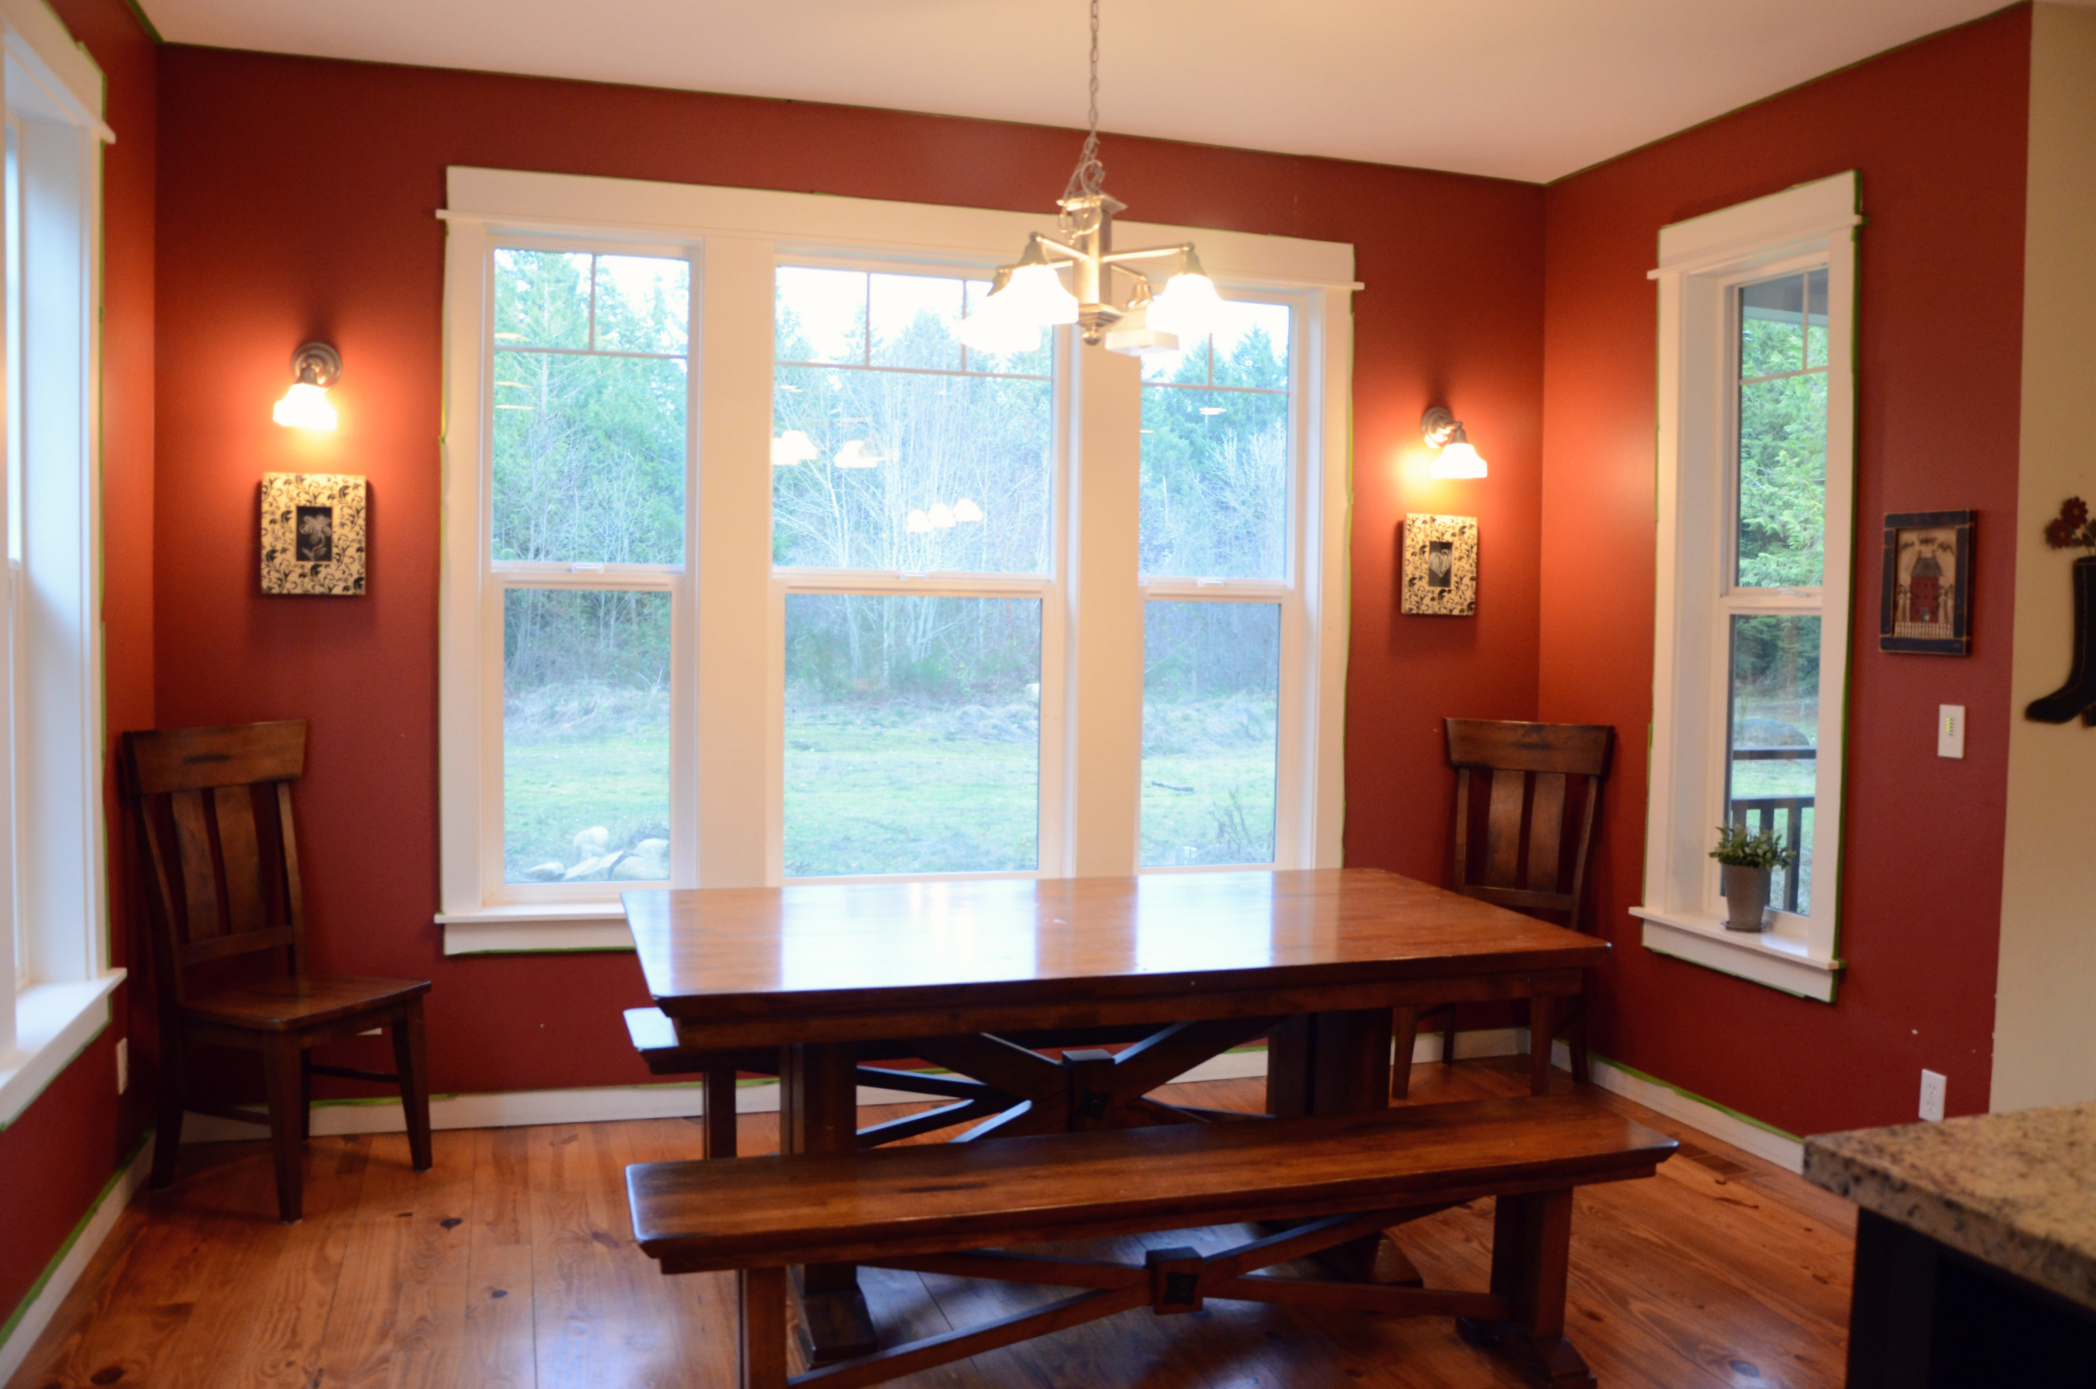 Elegant red dining room wall colors light of dining room - Red dining room color ideas ...